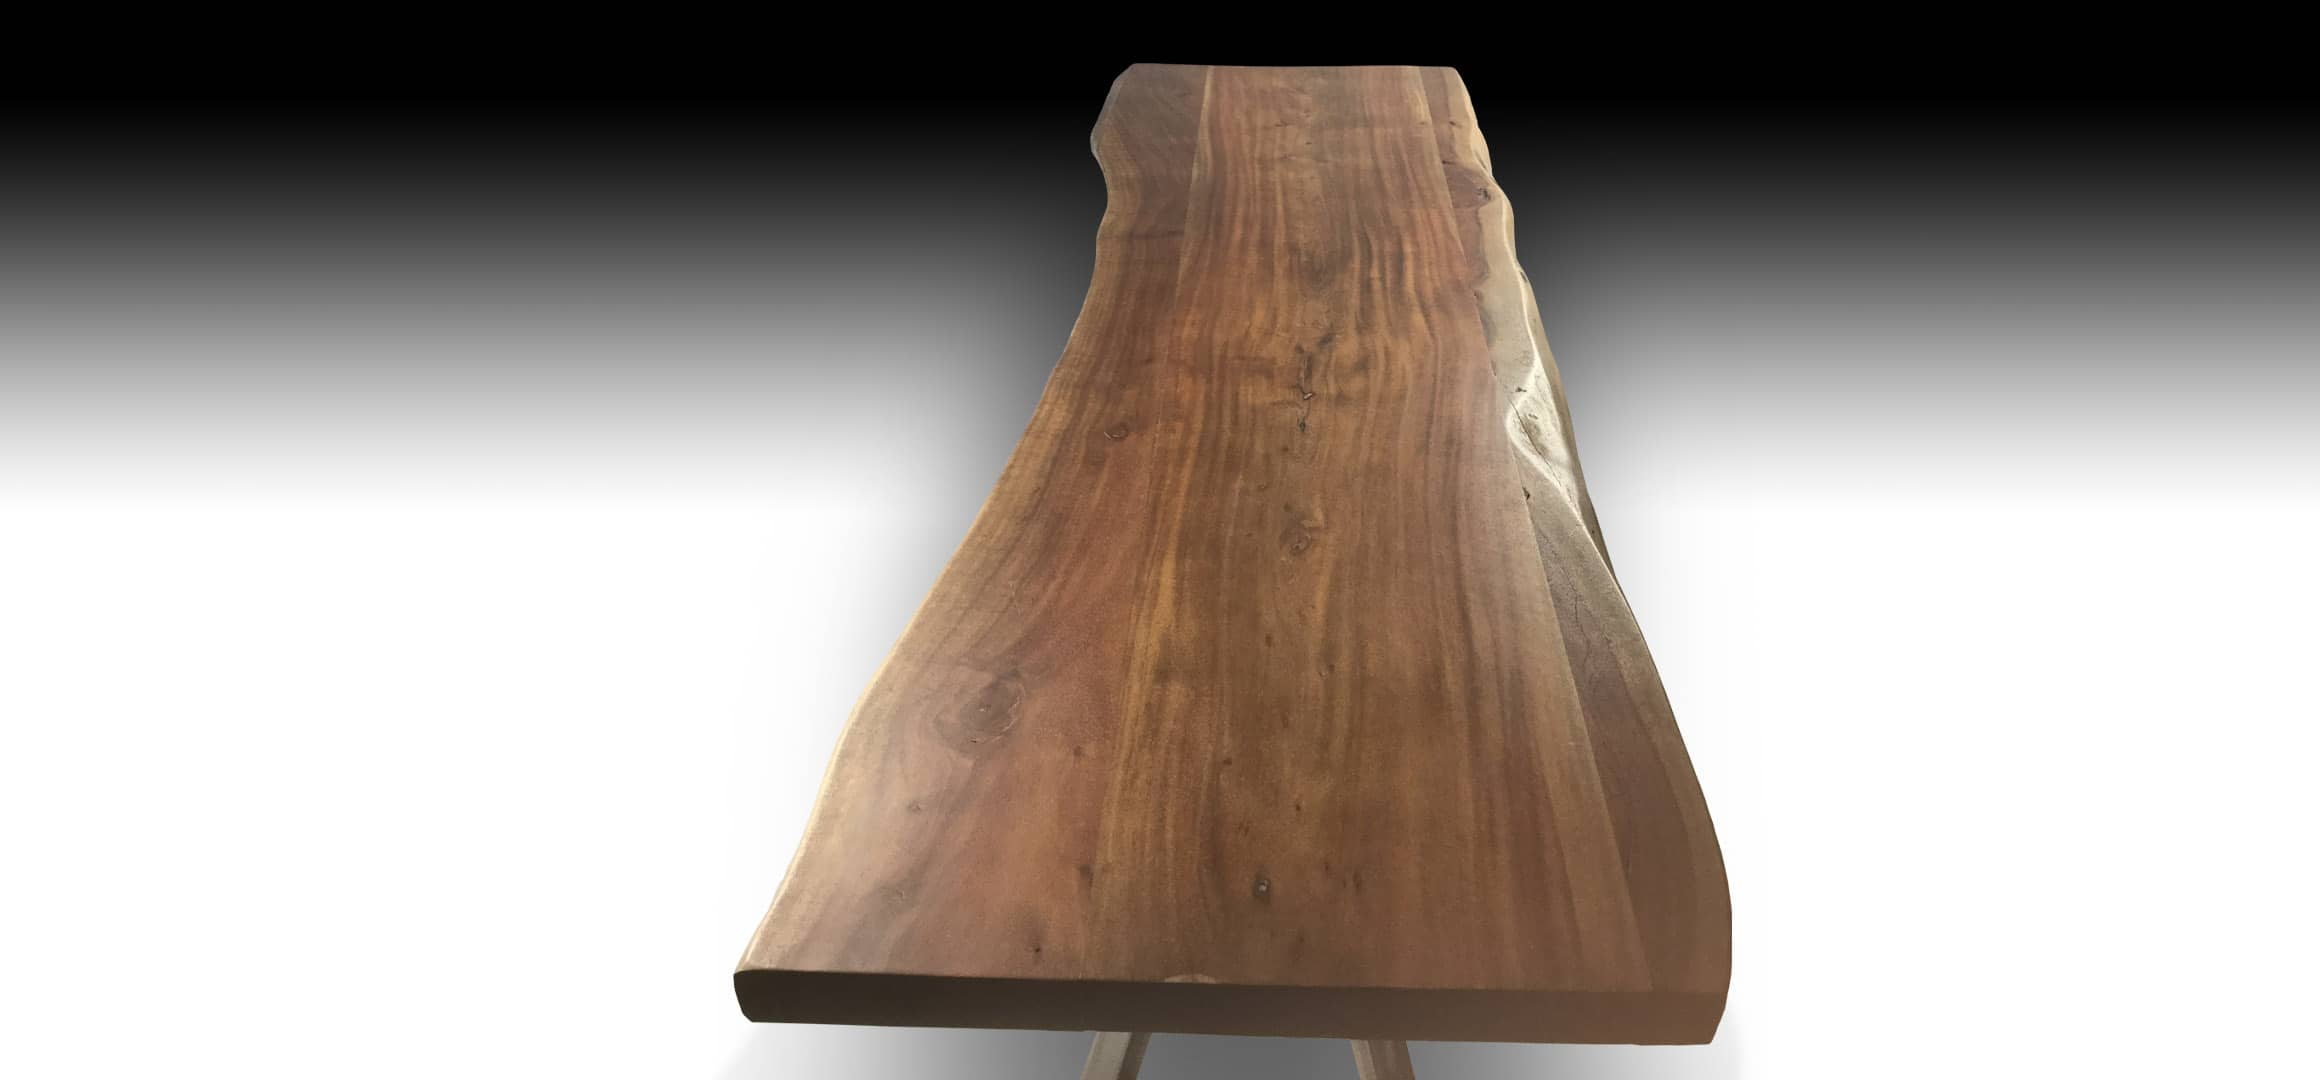 Ivars live edge Acacia wood console table top view